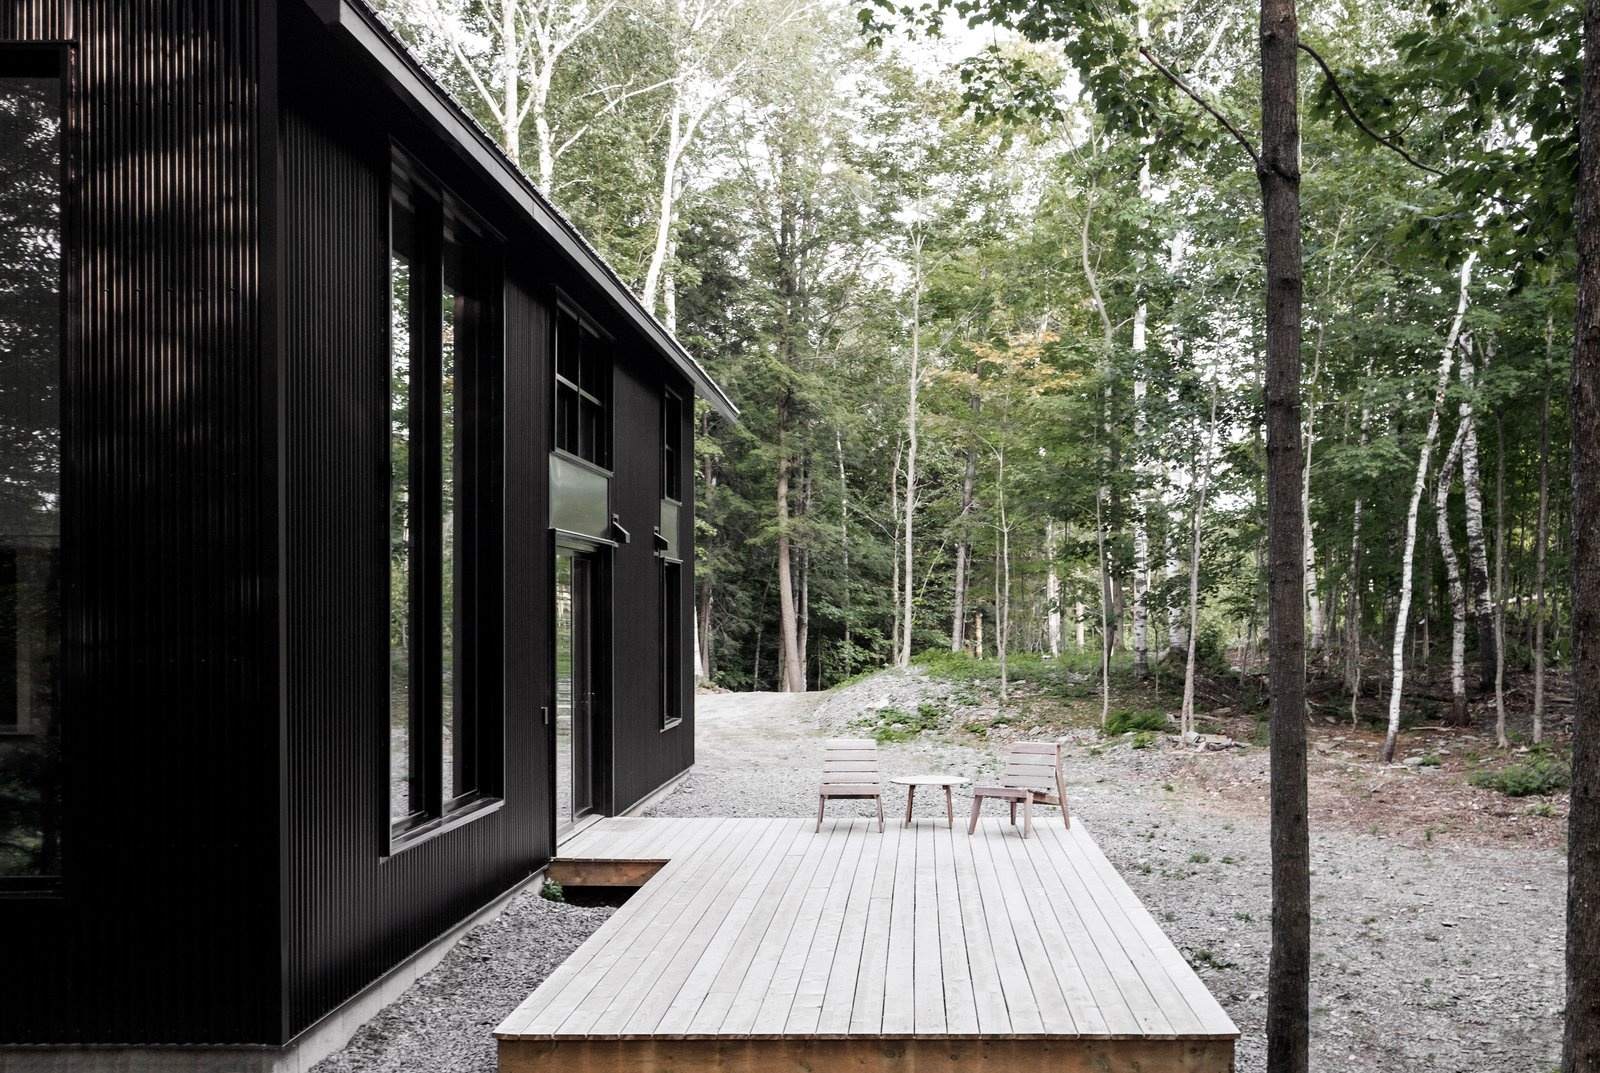 Grand Pic Chalet Appareil Architecture Quebec exterior deck